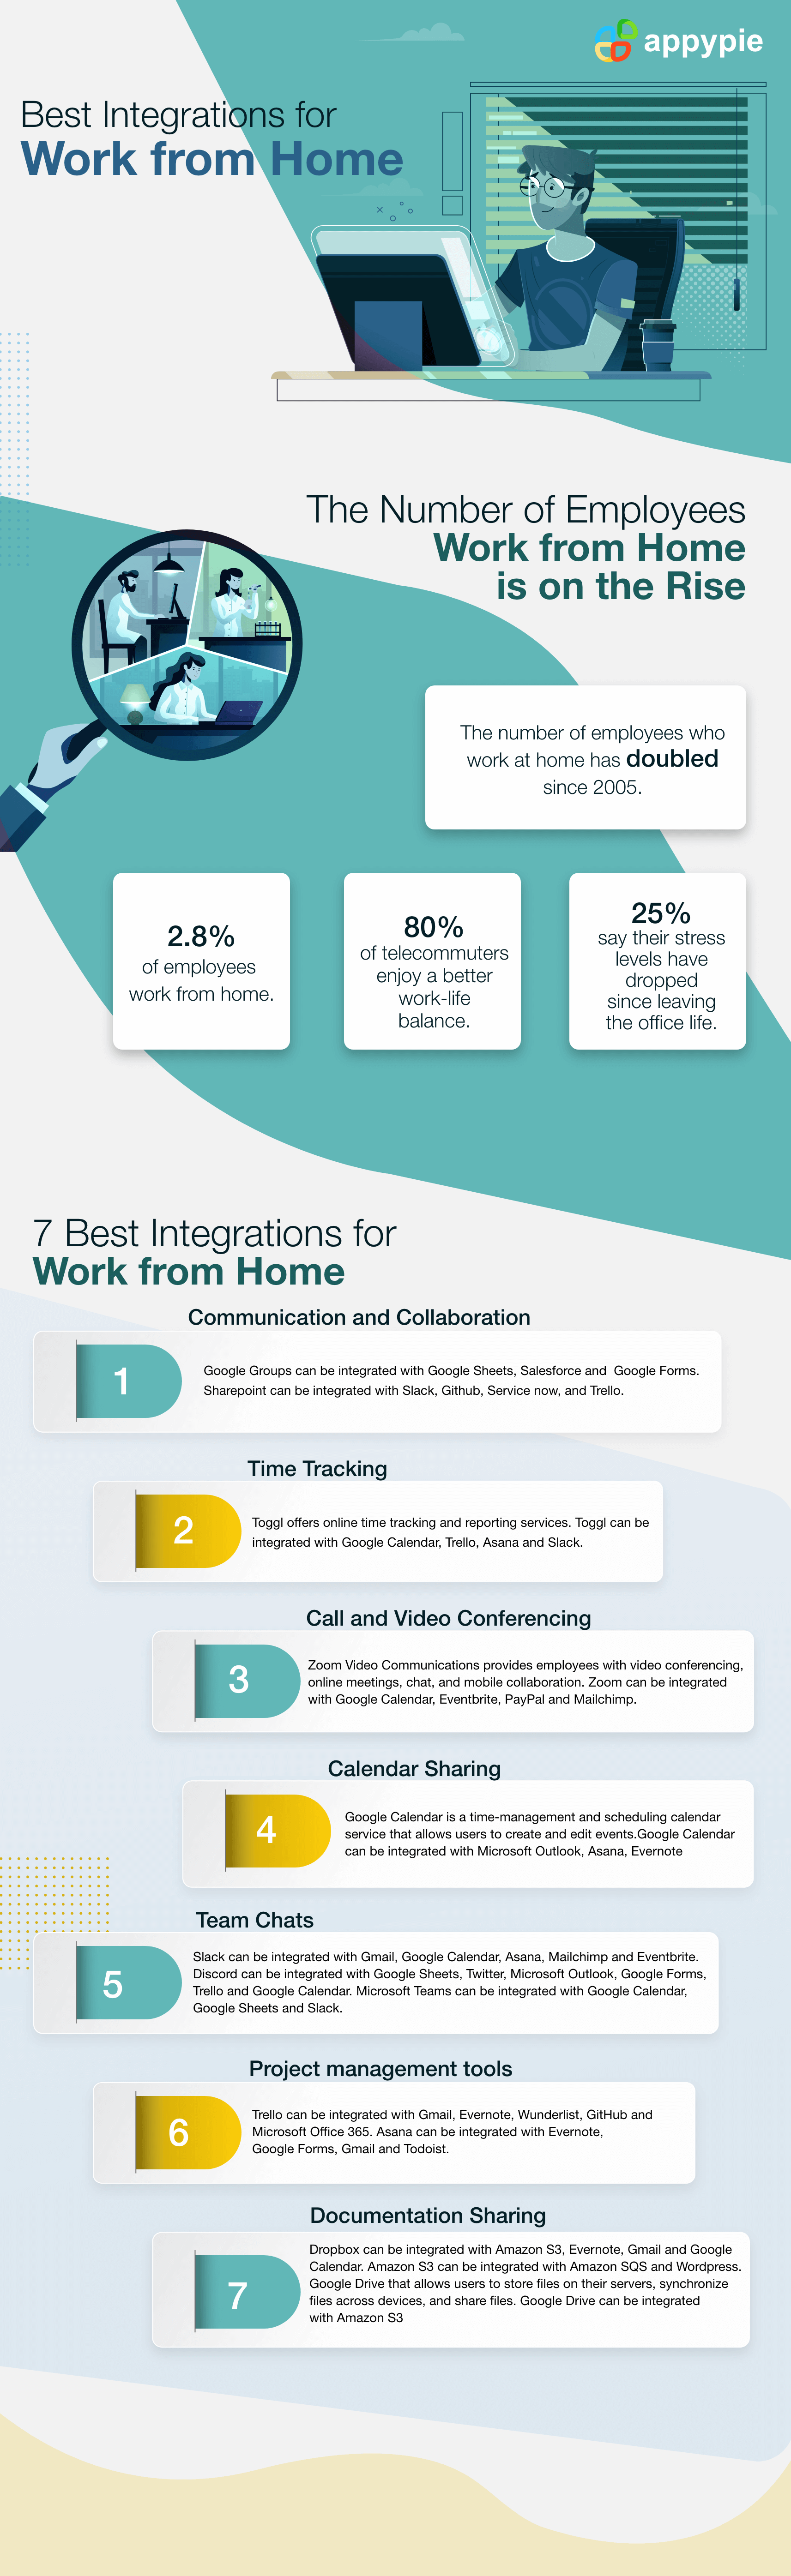 Best Integrations forWork from Home -AppyPie